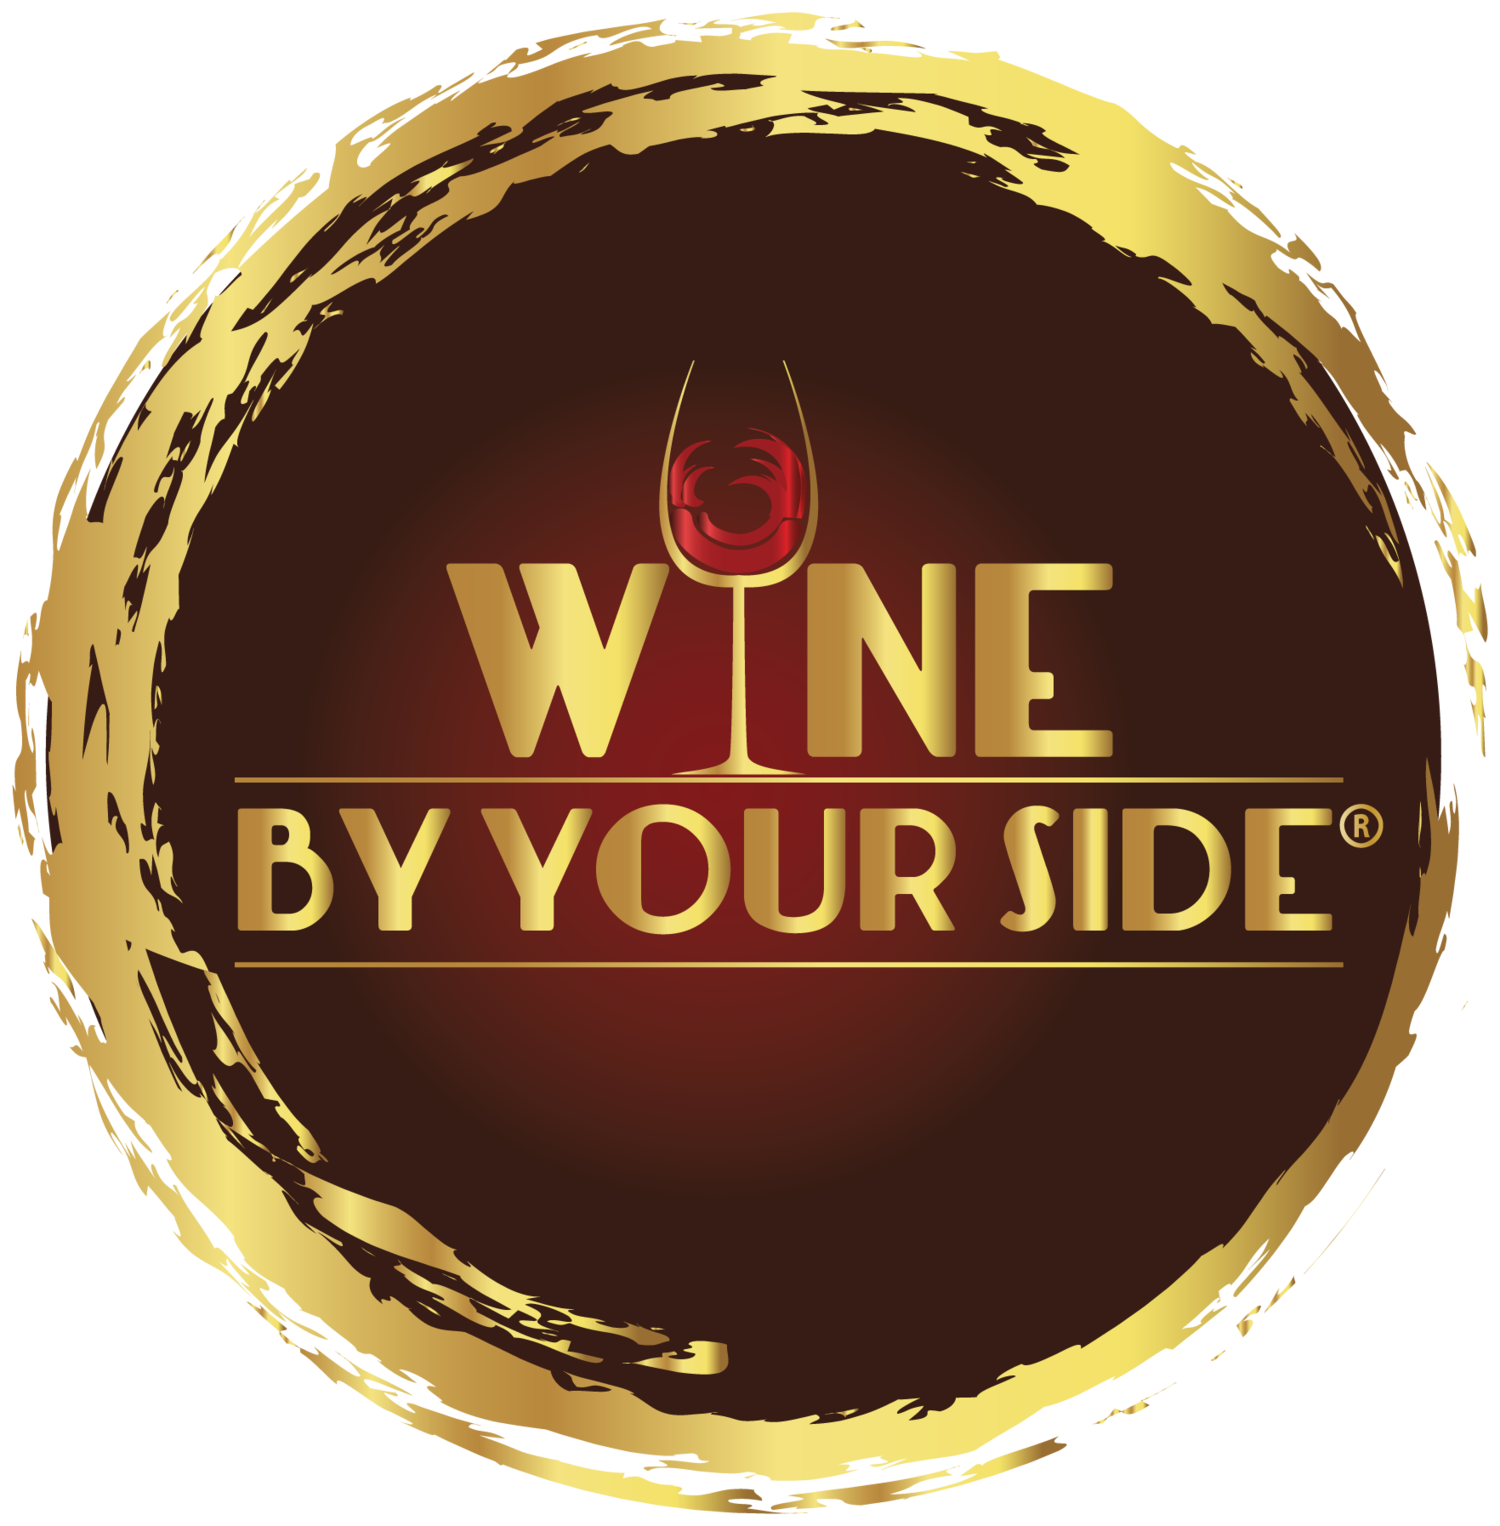 WINE BY YOUR SIDE